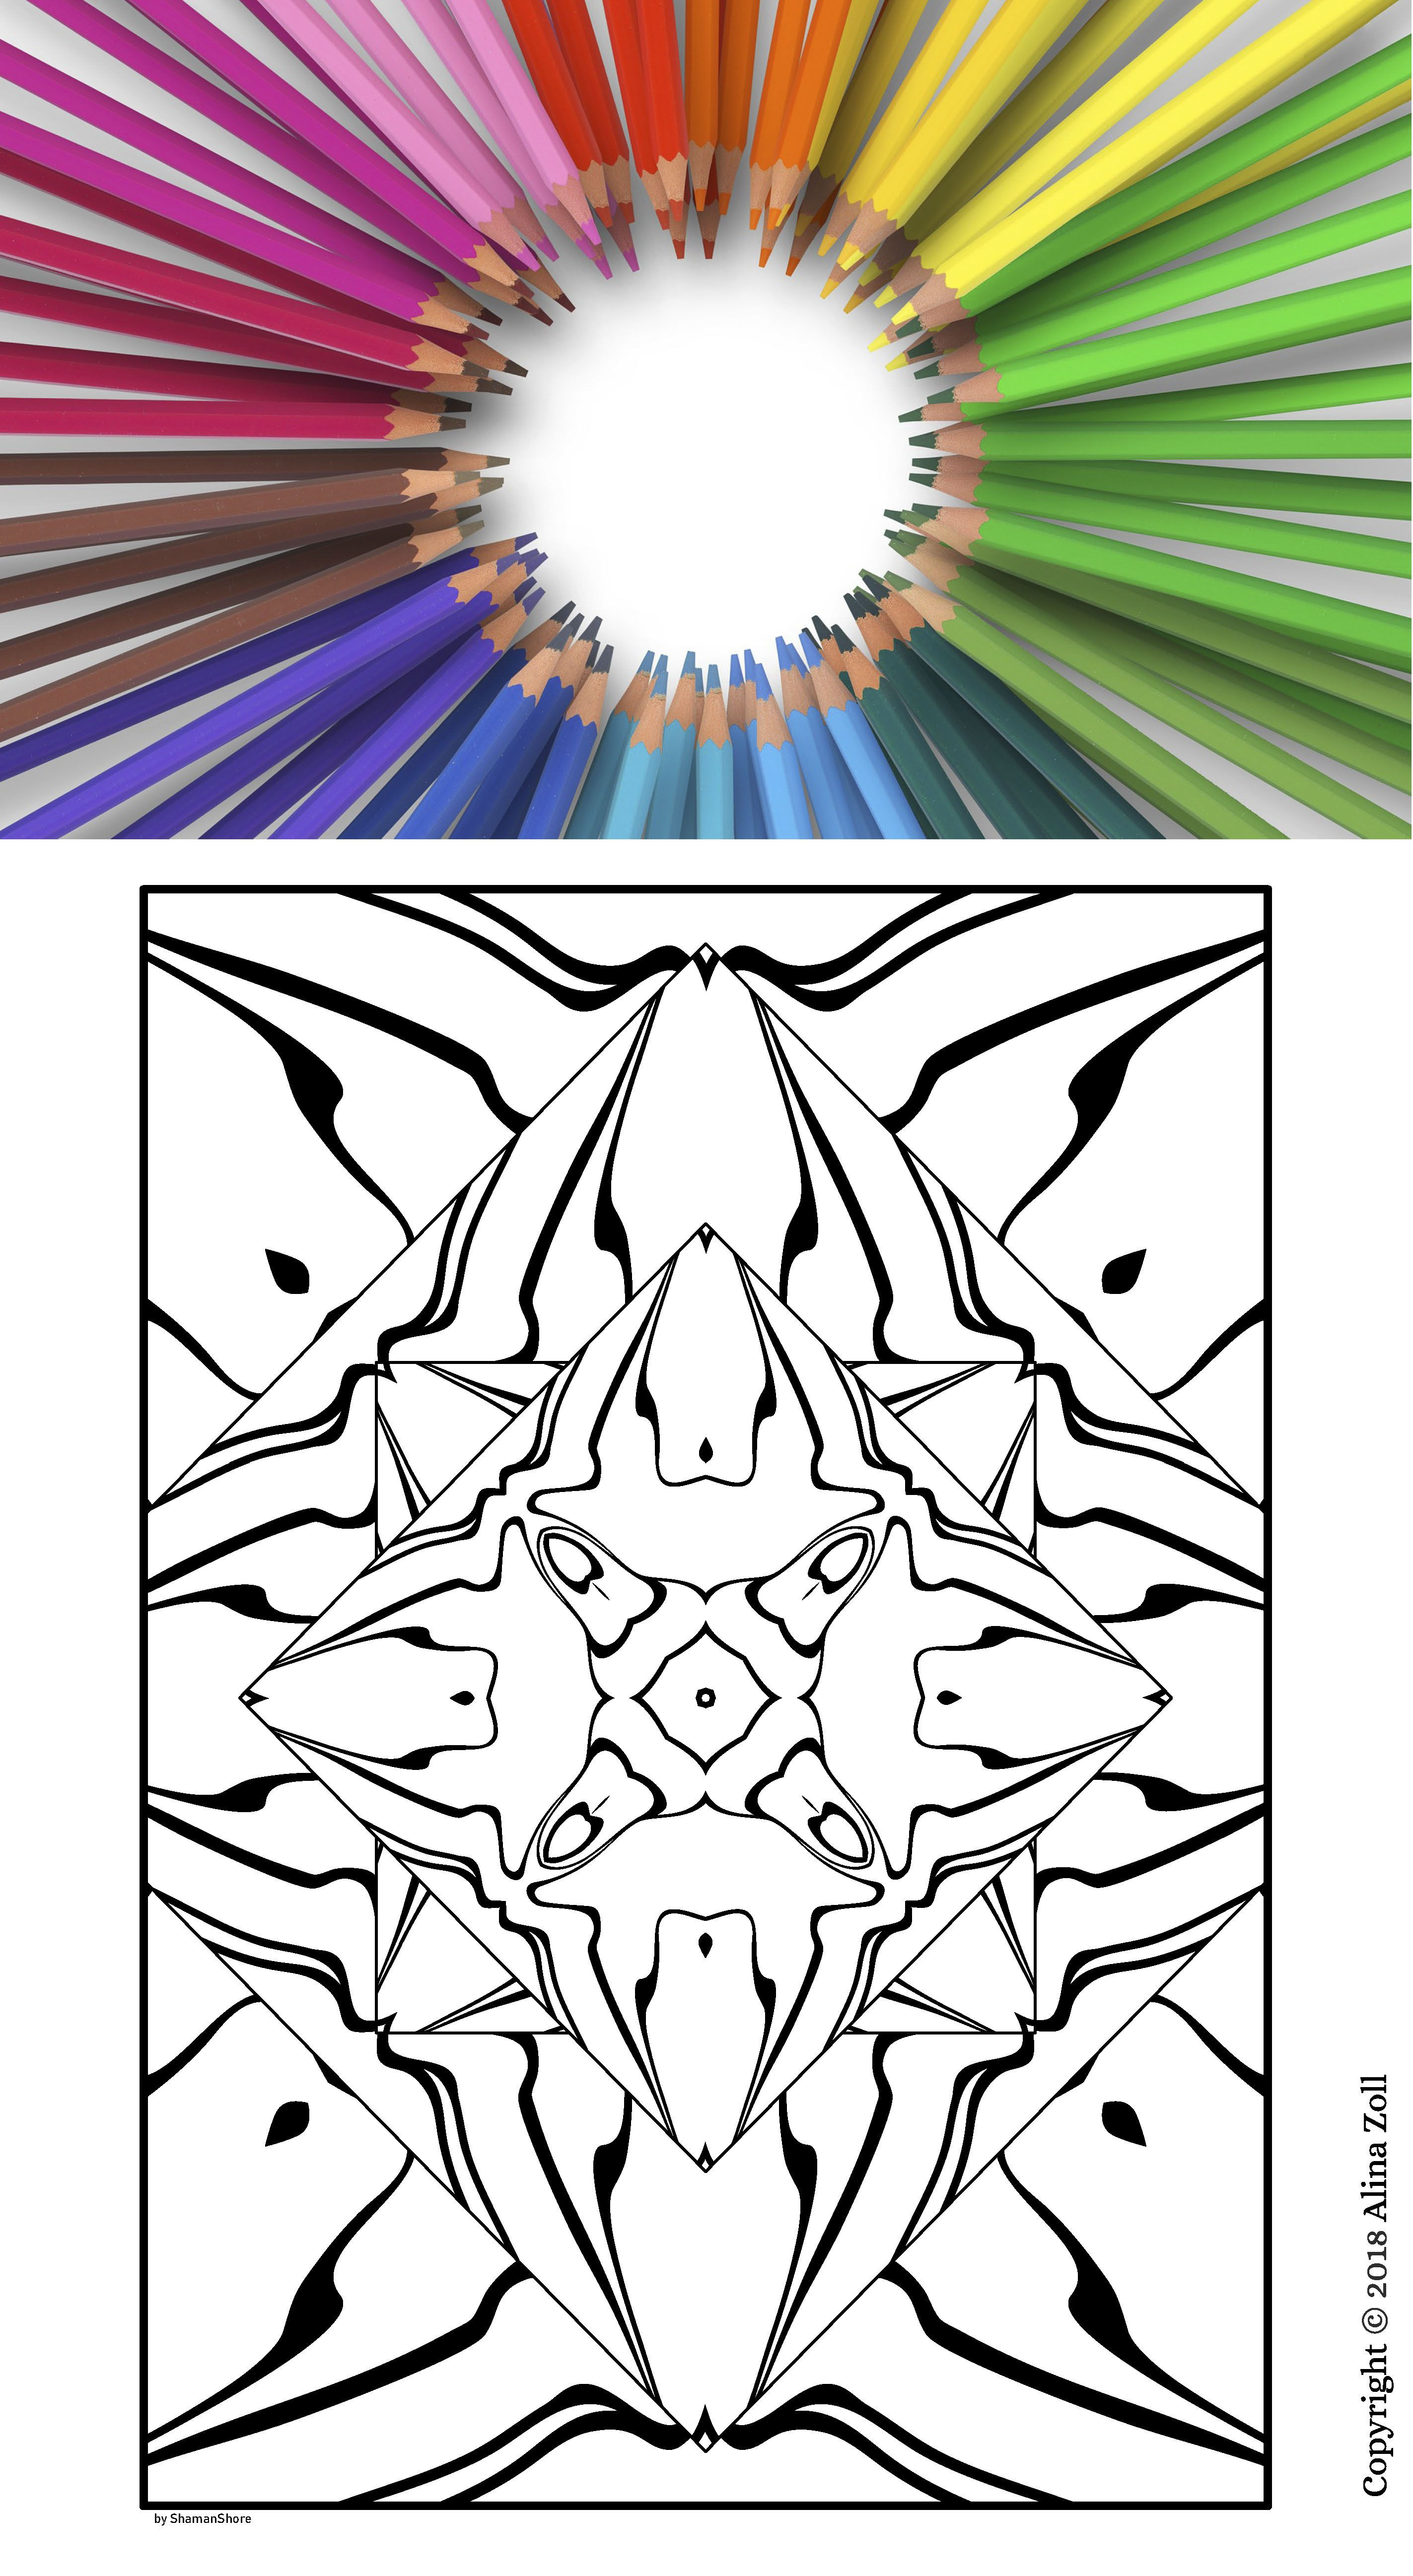 20 Abstract Kaleidoscope Coloring Pages For Adults Printable